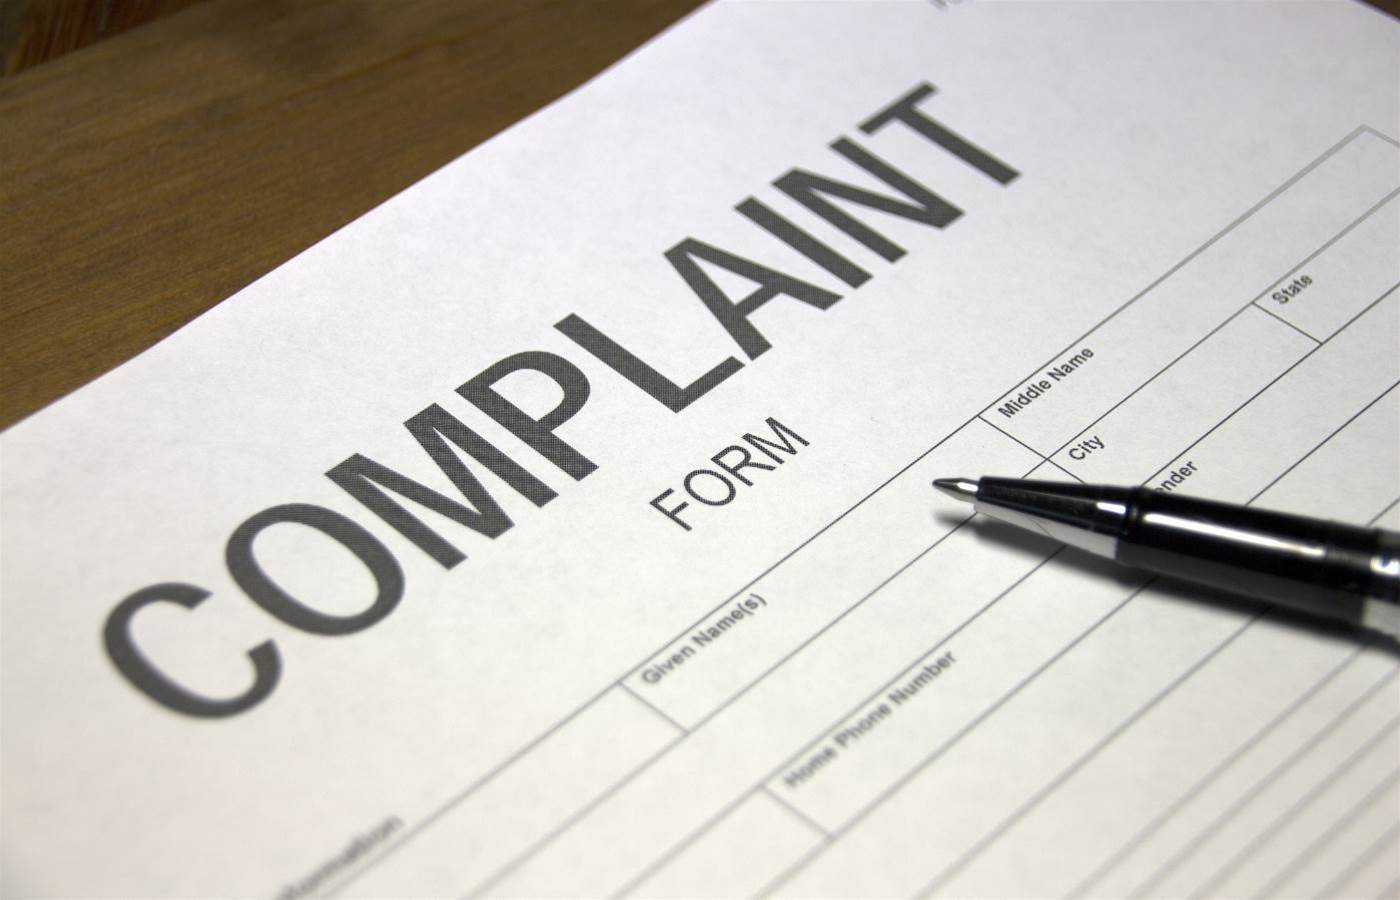 Online reseller Android Enjoyed remains at the top of NSW complaints list